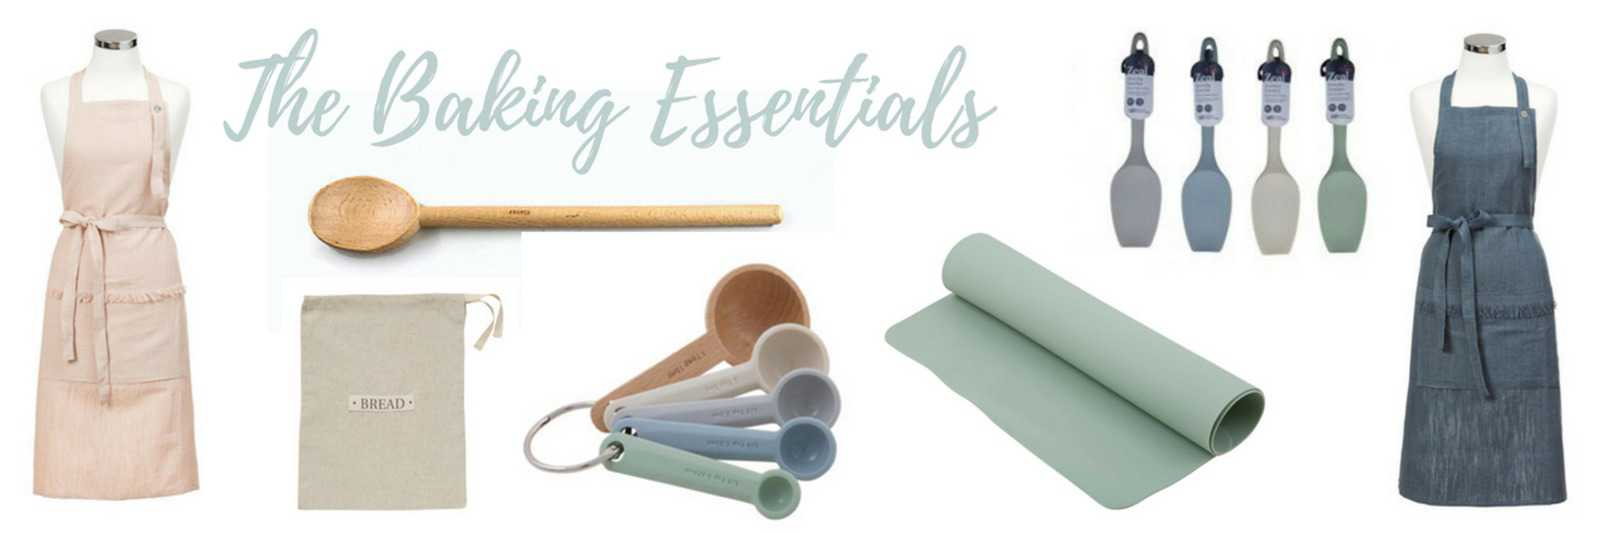 Every kitchen needs a few classic baking essentials... including silicone spatulas, measuring spoons, baking mats, linen aprons and wooden spoons.